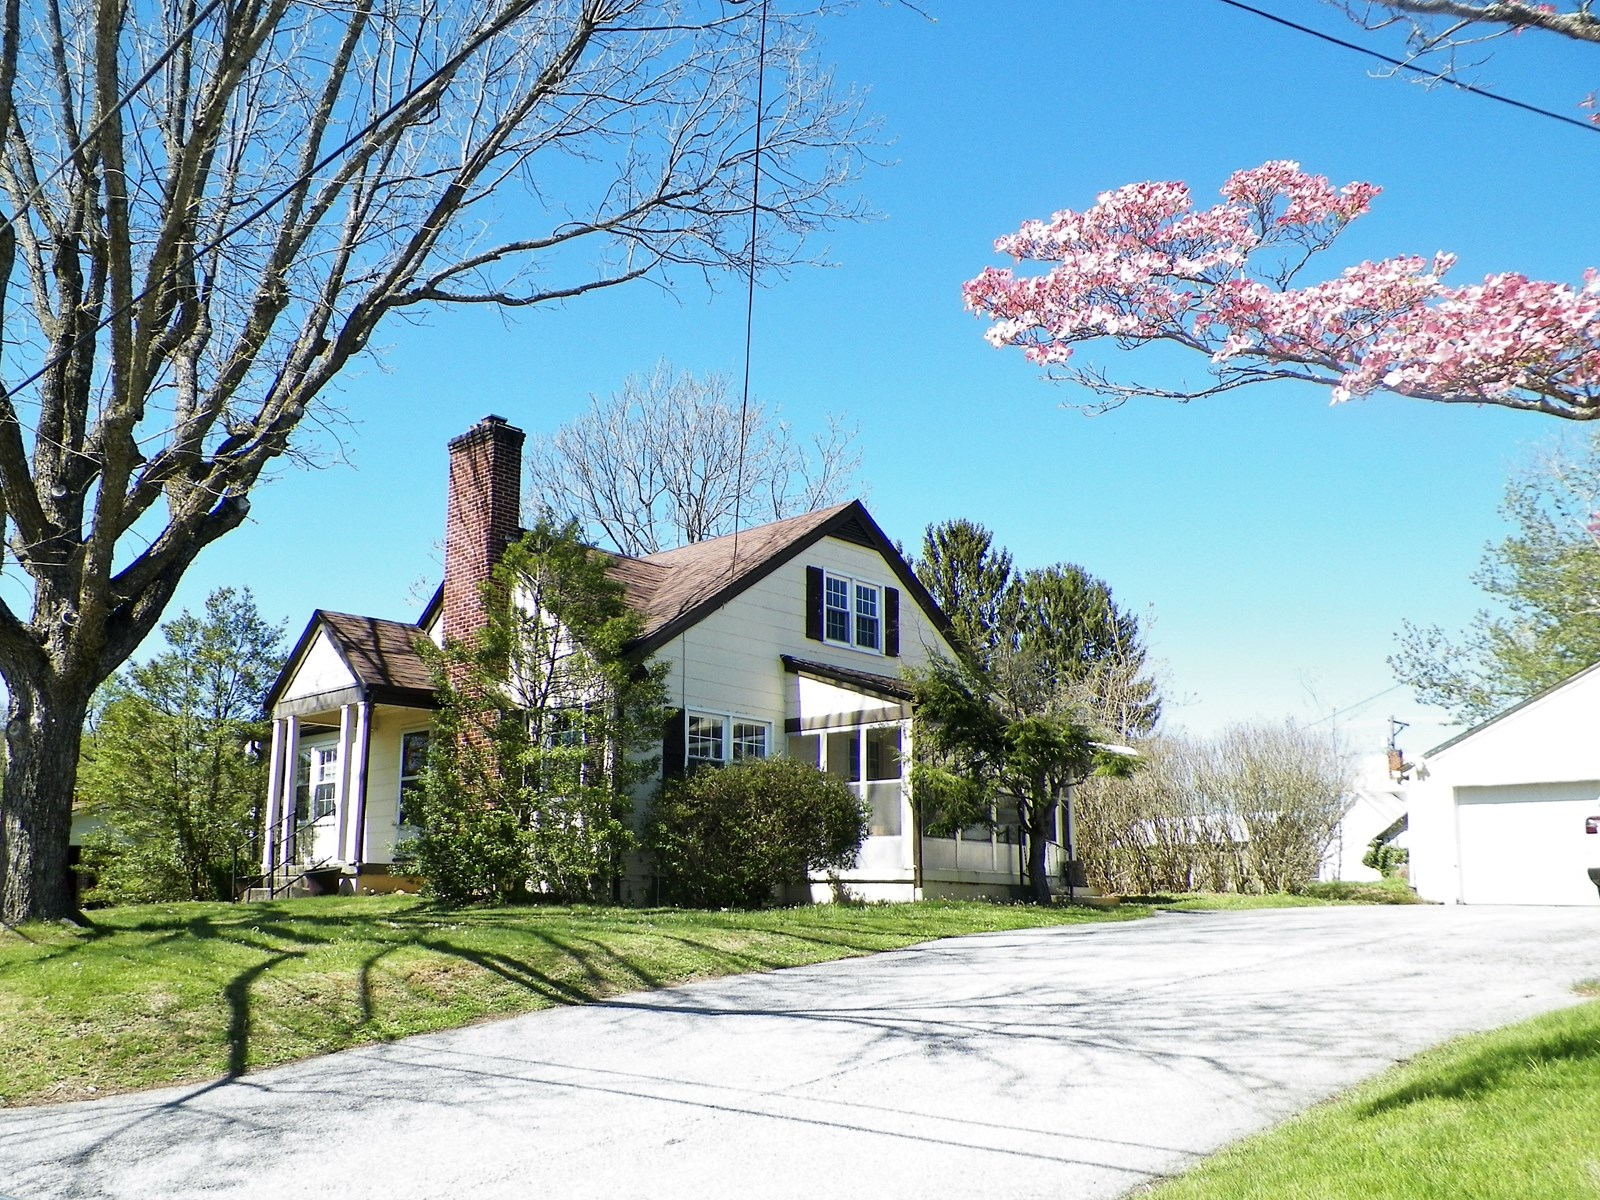 ADORABLE CAPE COD IN WYTHEVILLE, VA